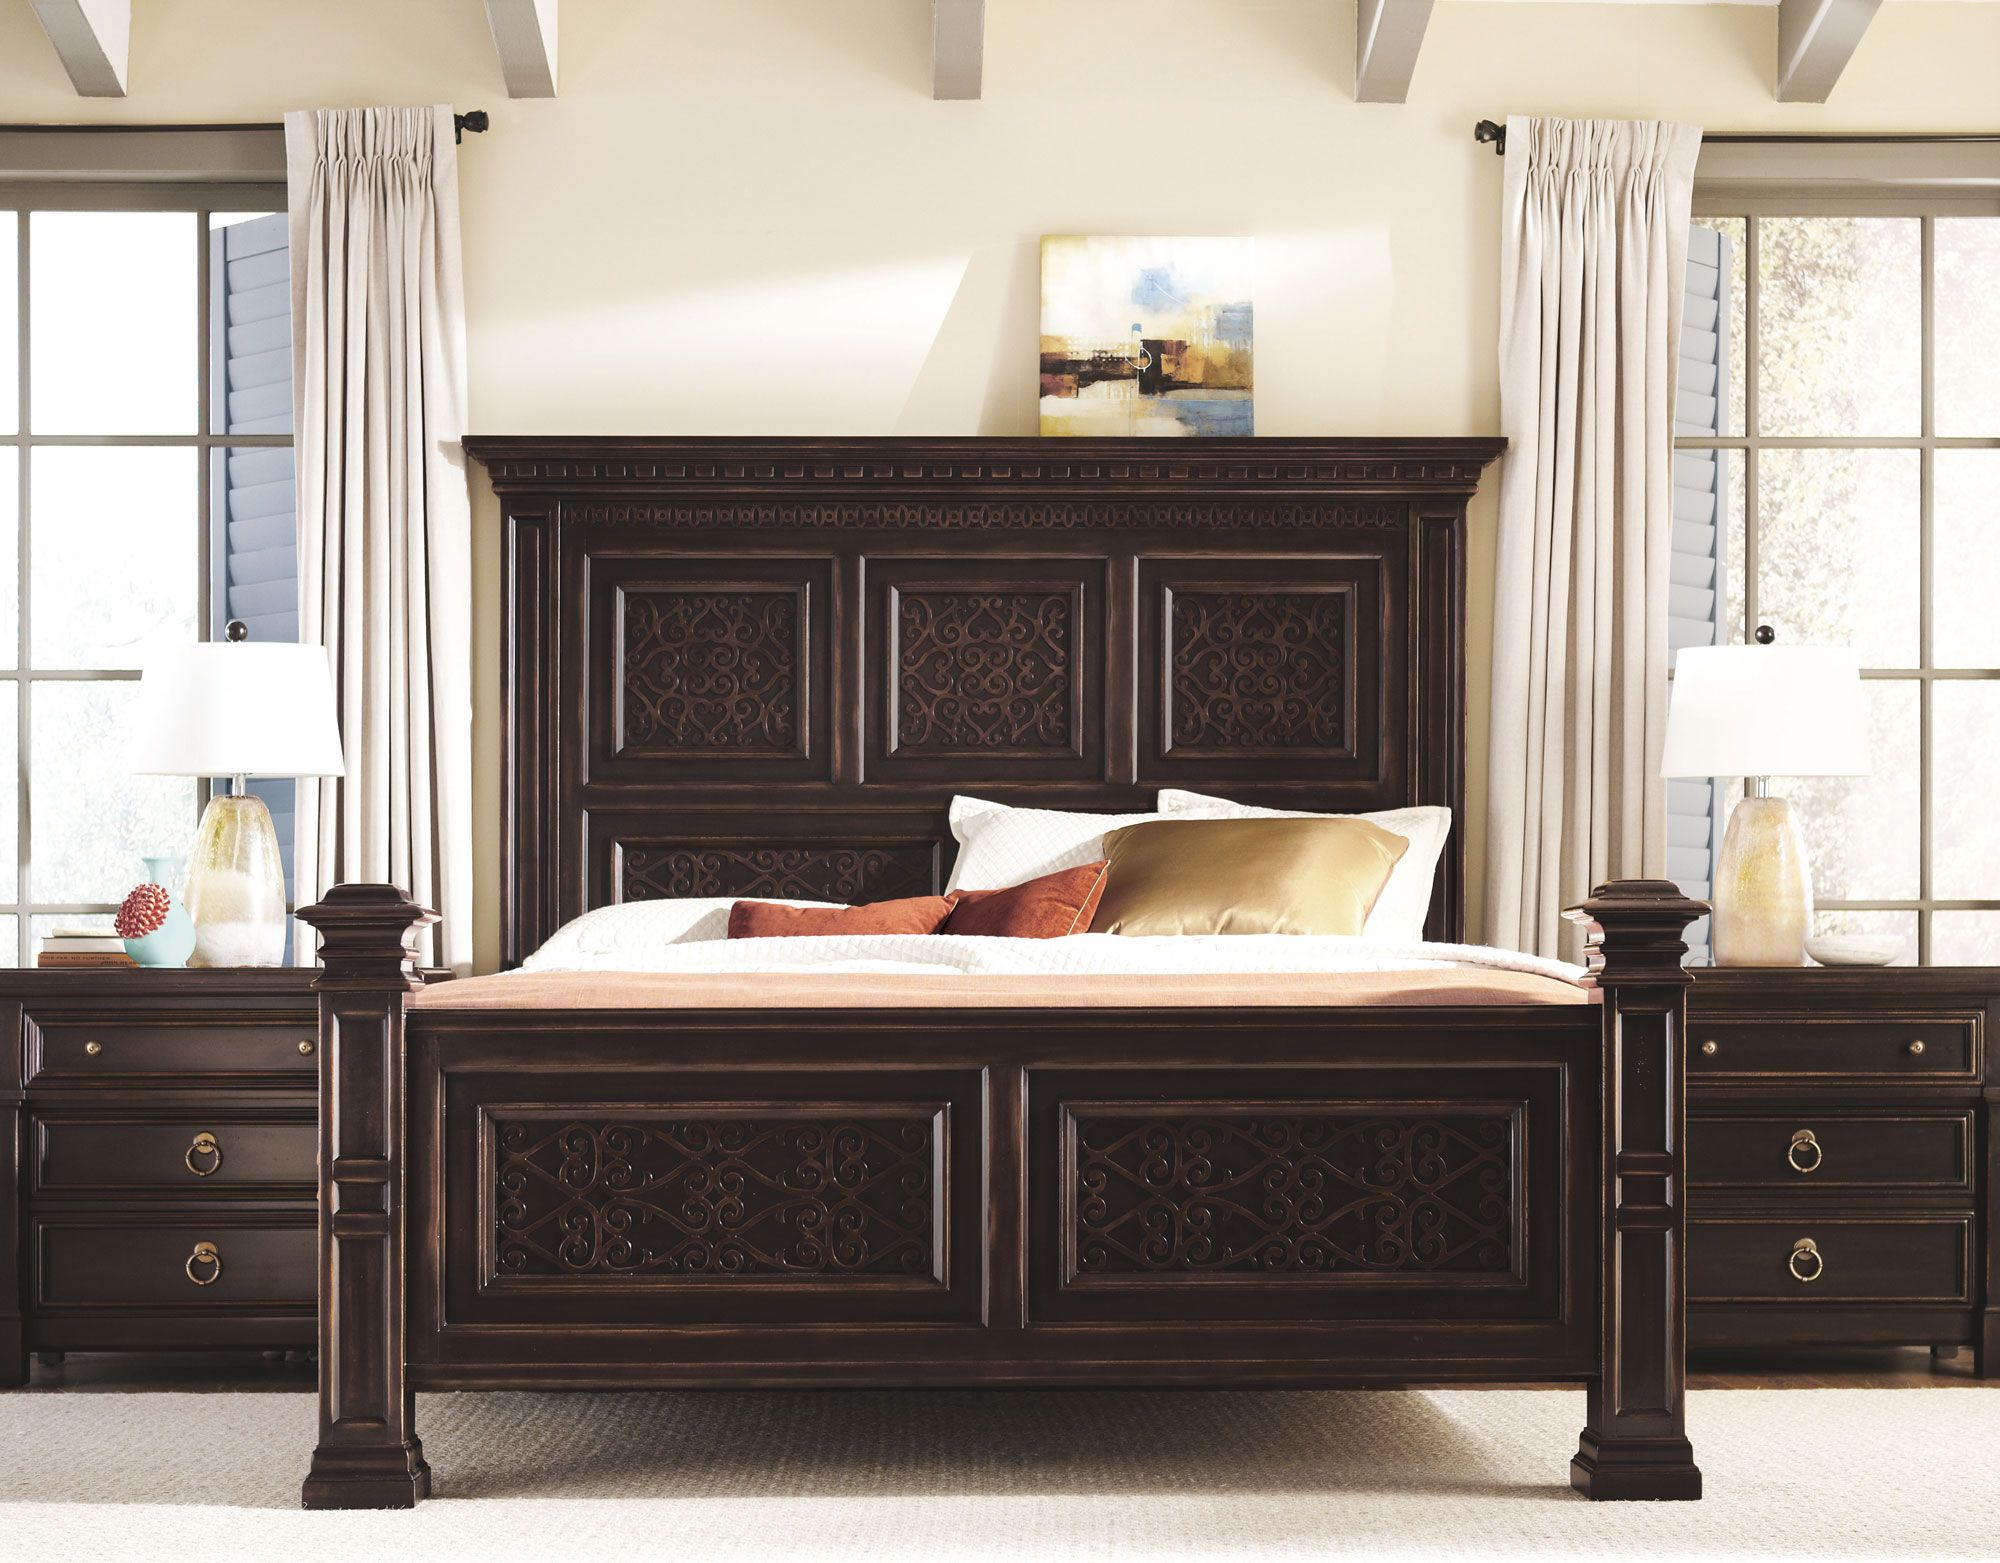 Shop For Pacific Canyon Panel Bed   QUEEN, And Other Bedroom Panel/Wall  Beds At Star Furniture TX. This Intricately Detailed, Bernhardt Bed, Was  Inspired By ...